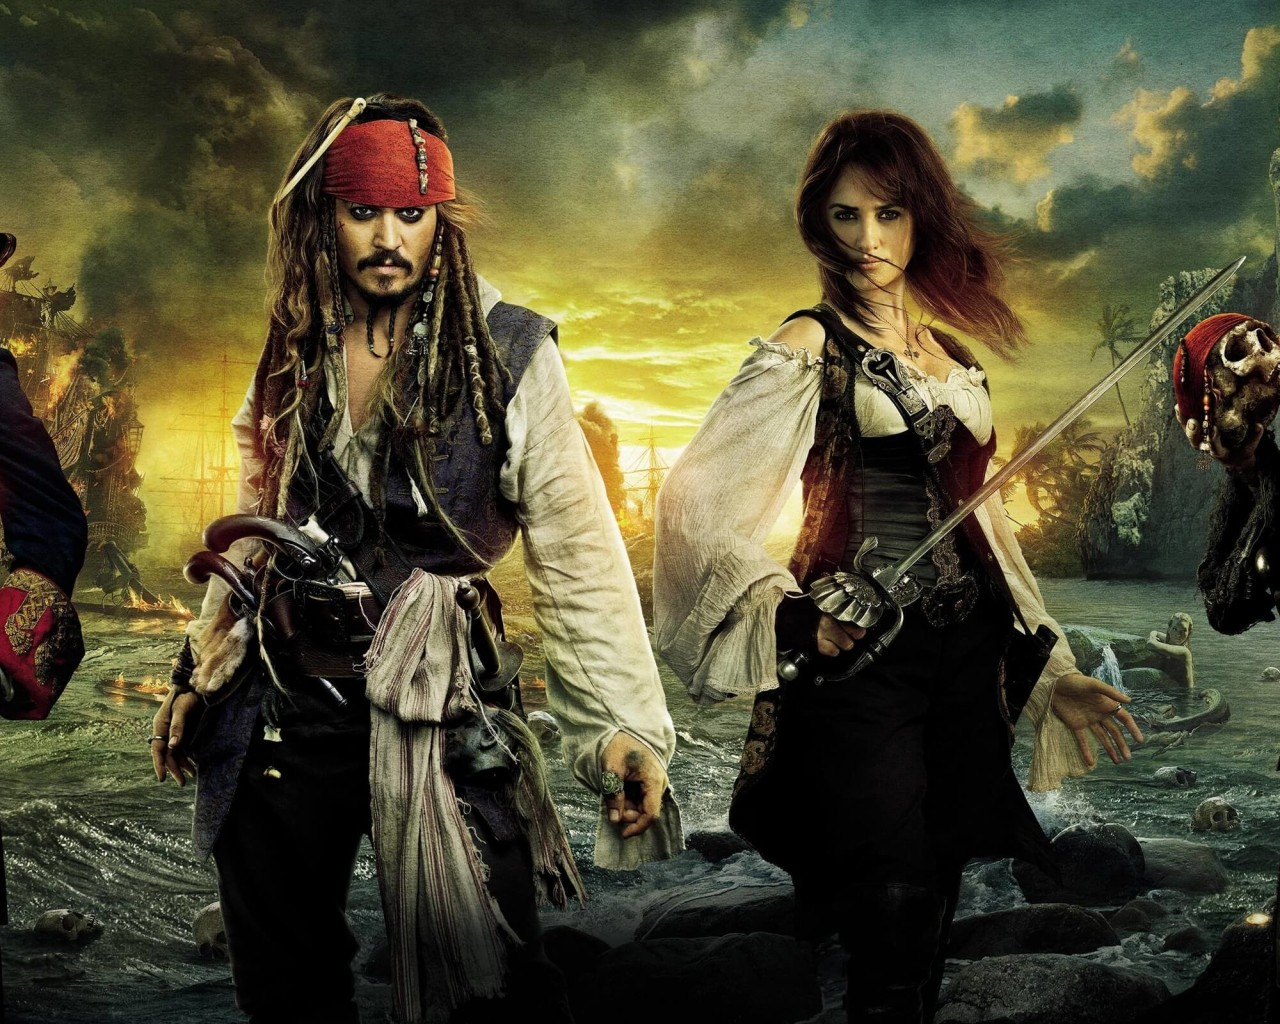 Pirates of the Caribbean: On Stranger Tides Characters Wallpaper for Desktop 1280x1024